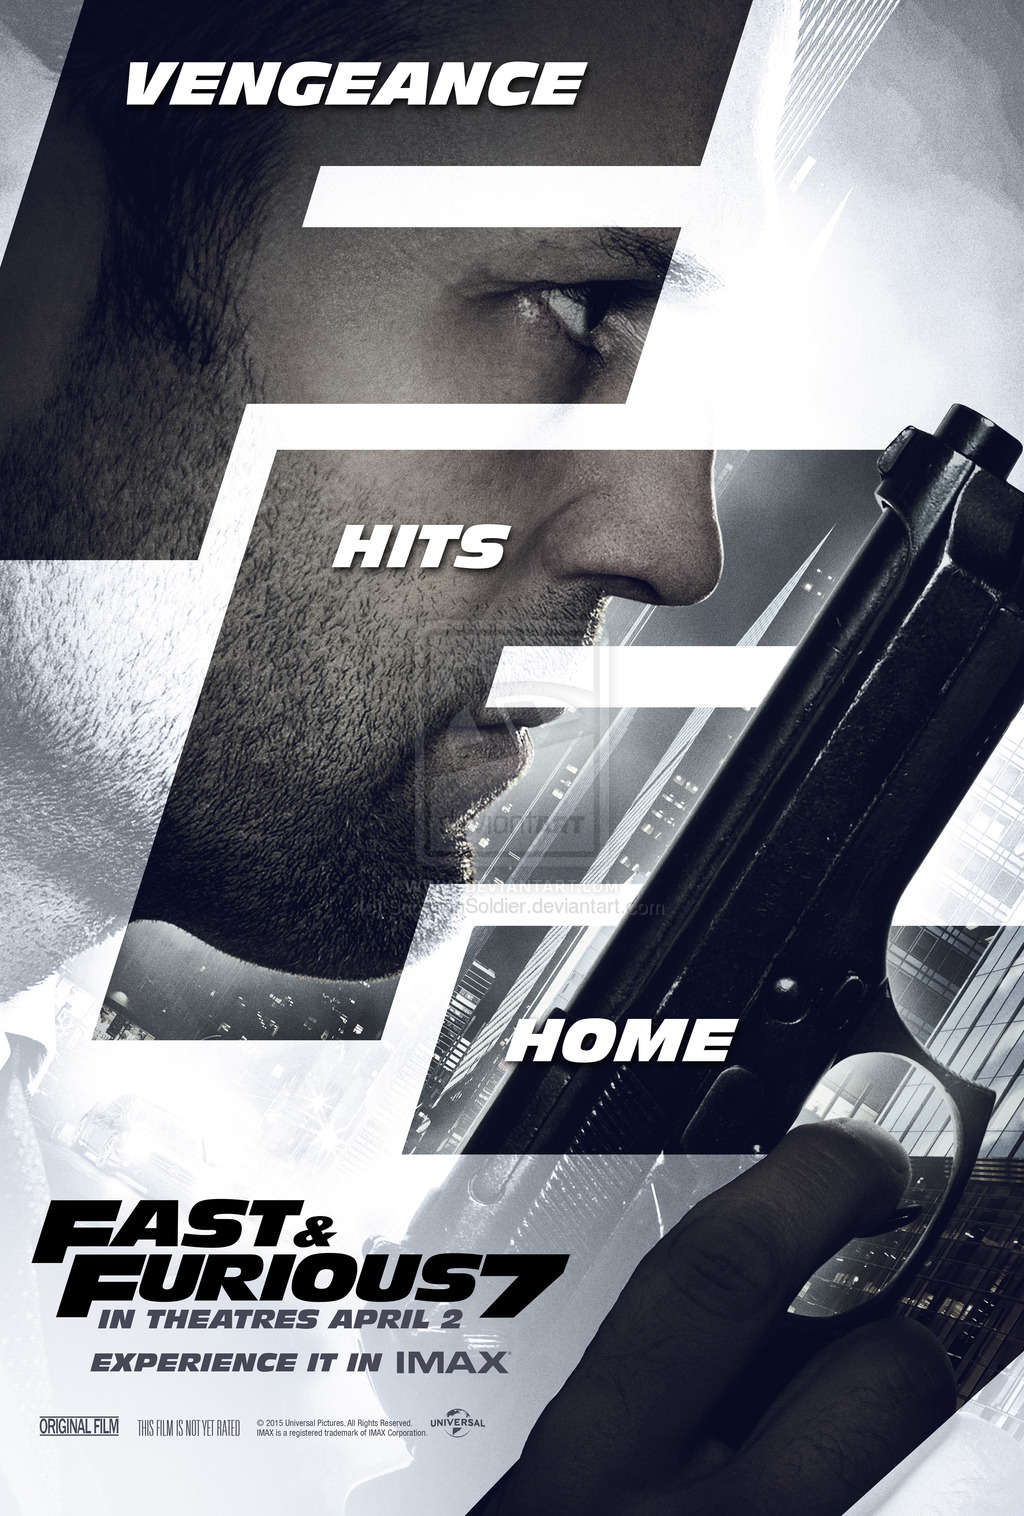 Download Film Fast And Furious 7 Subtitle Indonesia ...